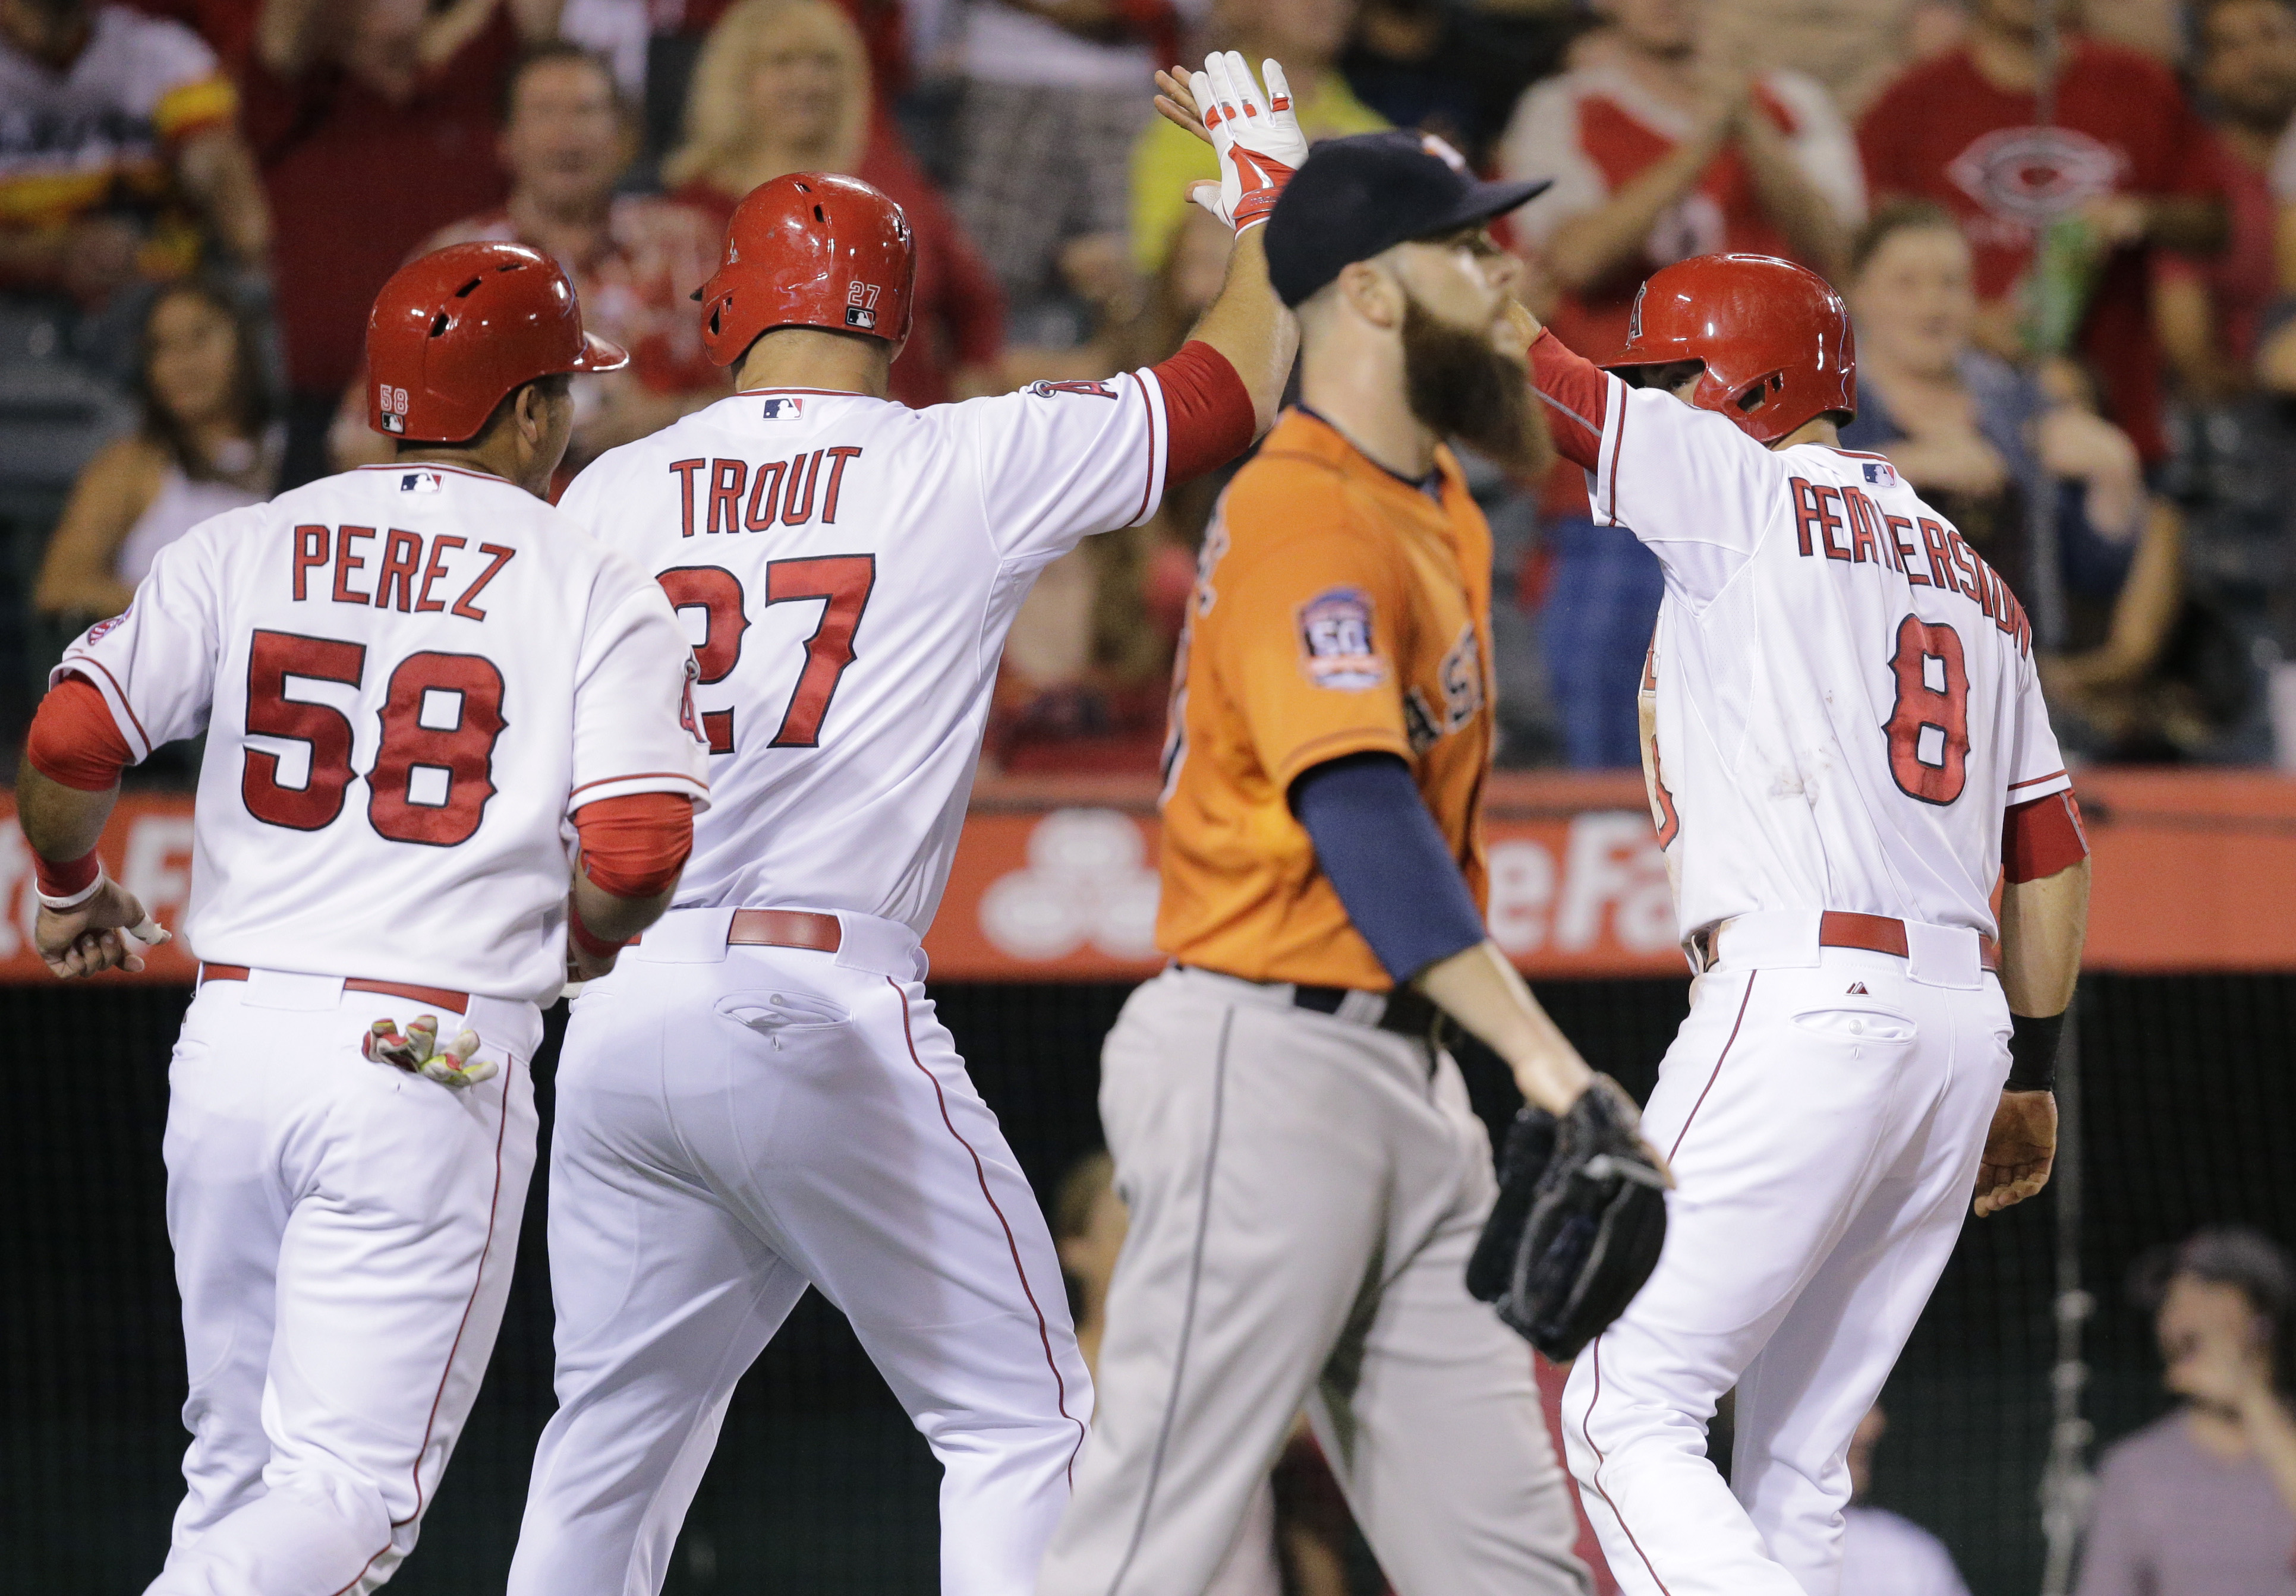 Los Angeles Angels' Taylor Featherston (8), Carlos Perez (58) and Mike Trout (27) celebrate after Featherston and Perez scored on a single by Los Angeles Angels' Kole Calhoun as Houston Astros starting pitcher Dallas Keuchel, foreground, walks toward the